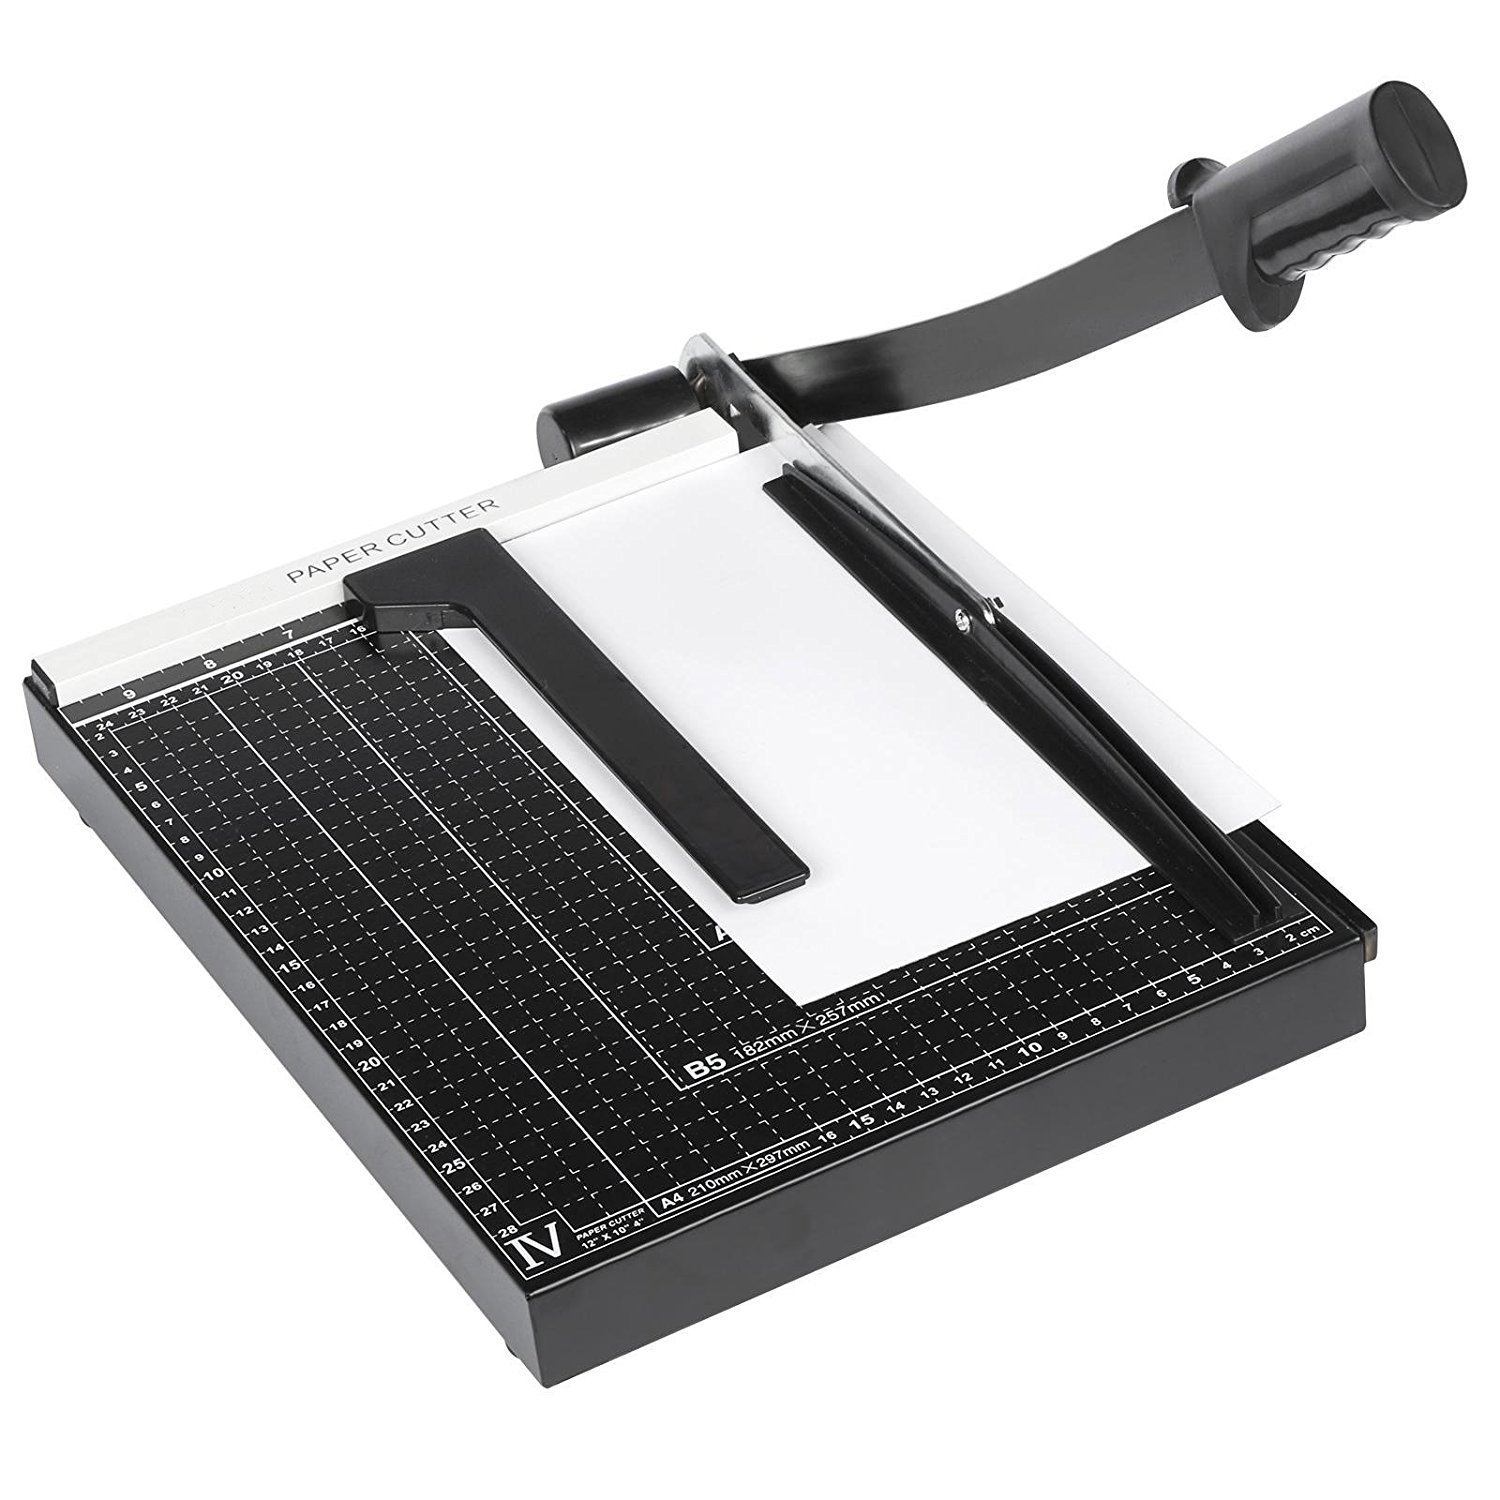 Paper Cutter 12 Inch, Guillotine Trimmer Black, 10 Sheet Capacity for Home Office, Automatic Clamp, Sturdy Plastic Base Rateim